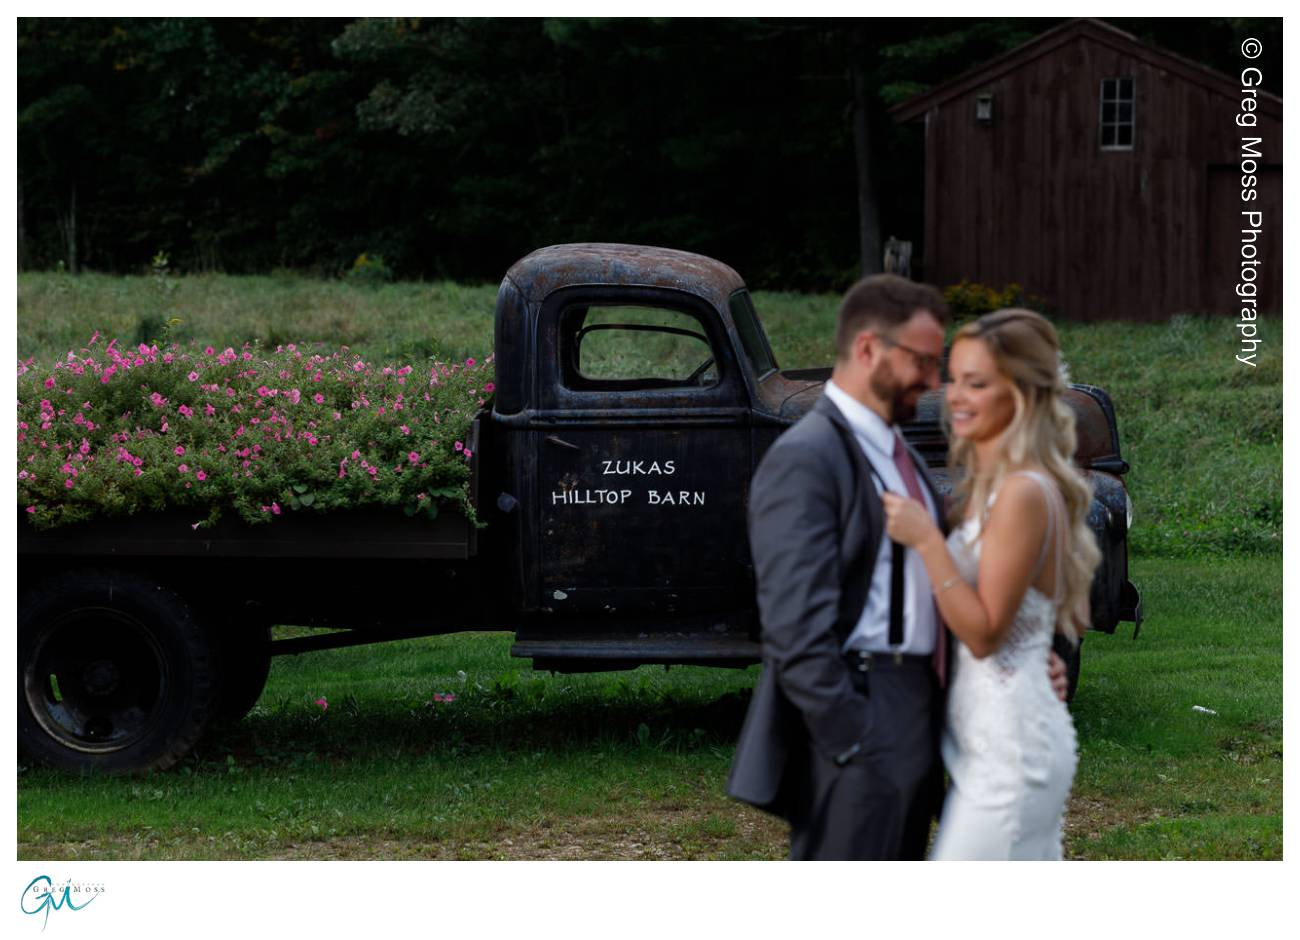 Zukas Hilltop Barn Wedding